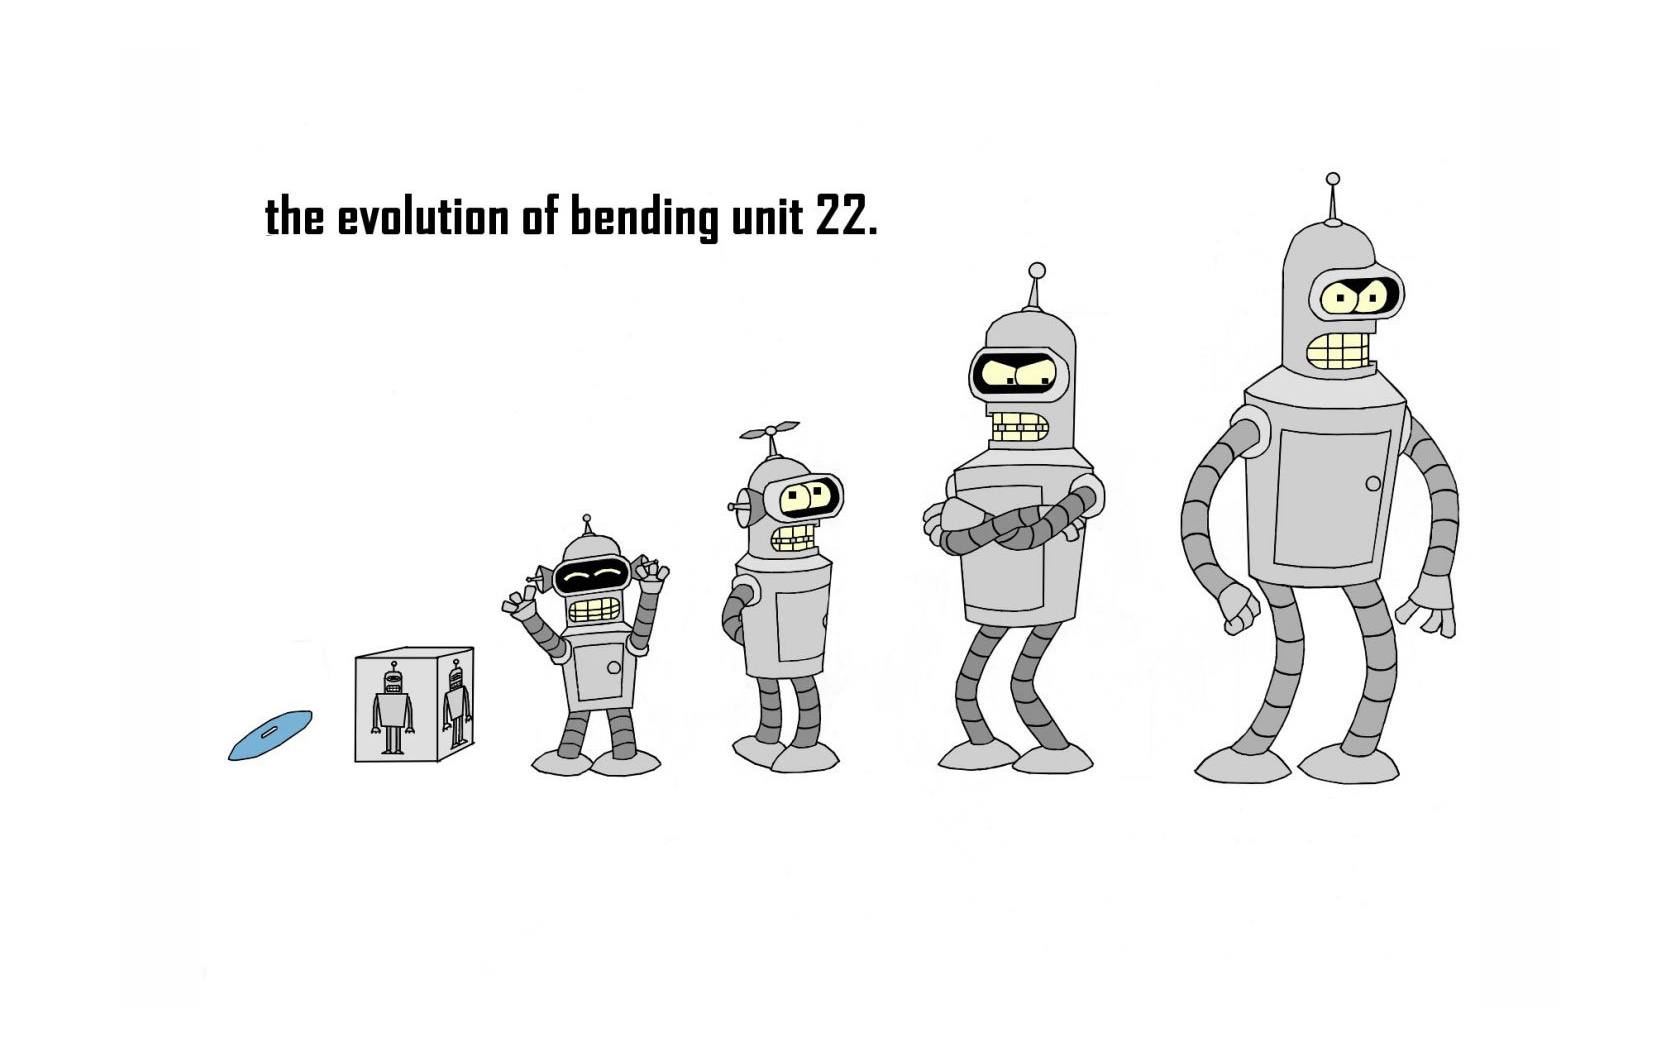 Futurama Bender Wallpaper 1680x1050 Futurama Bender Evolution 1680x1050